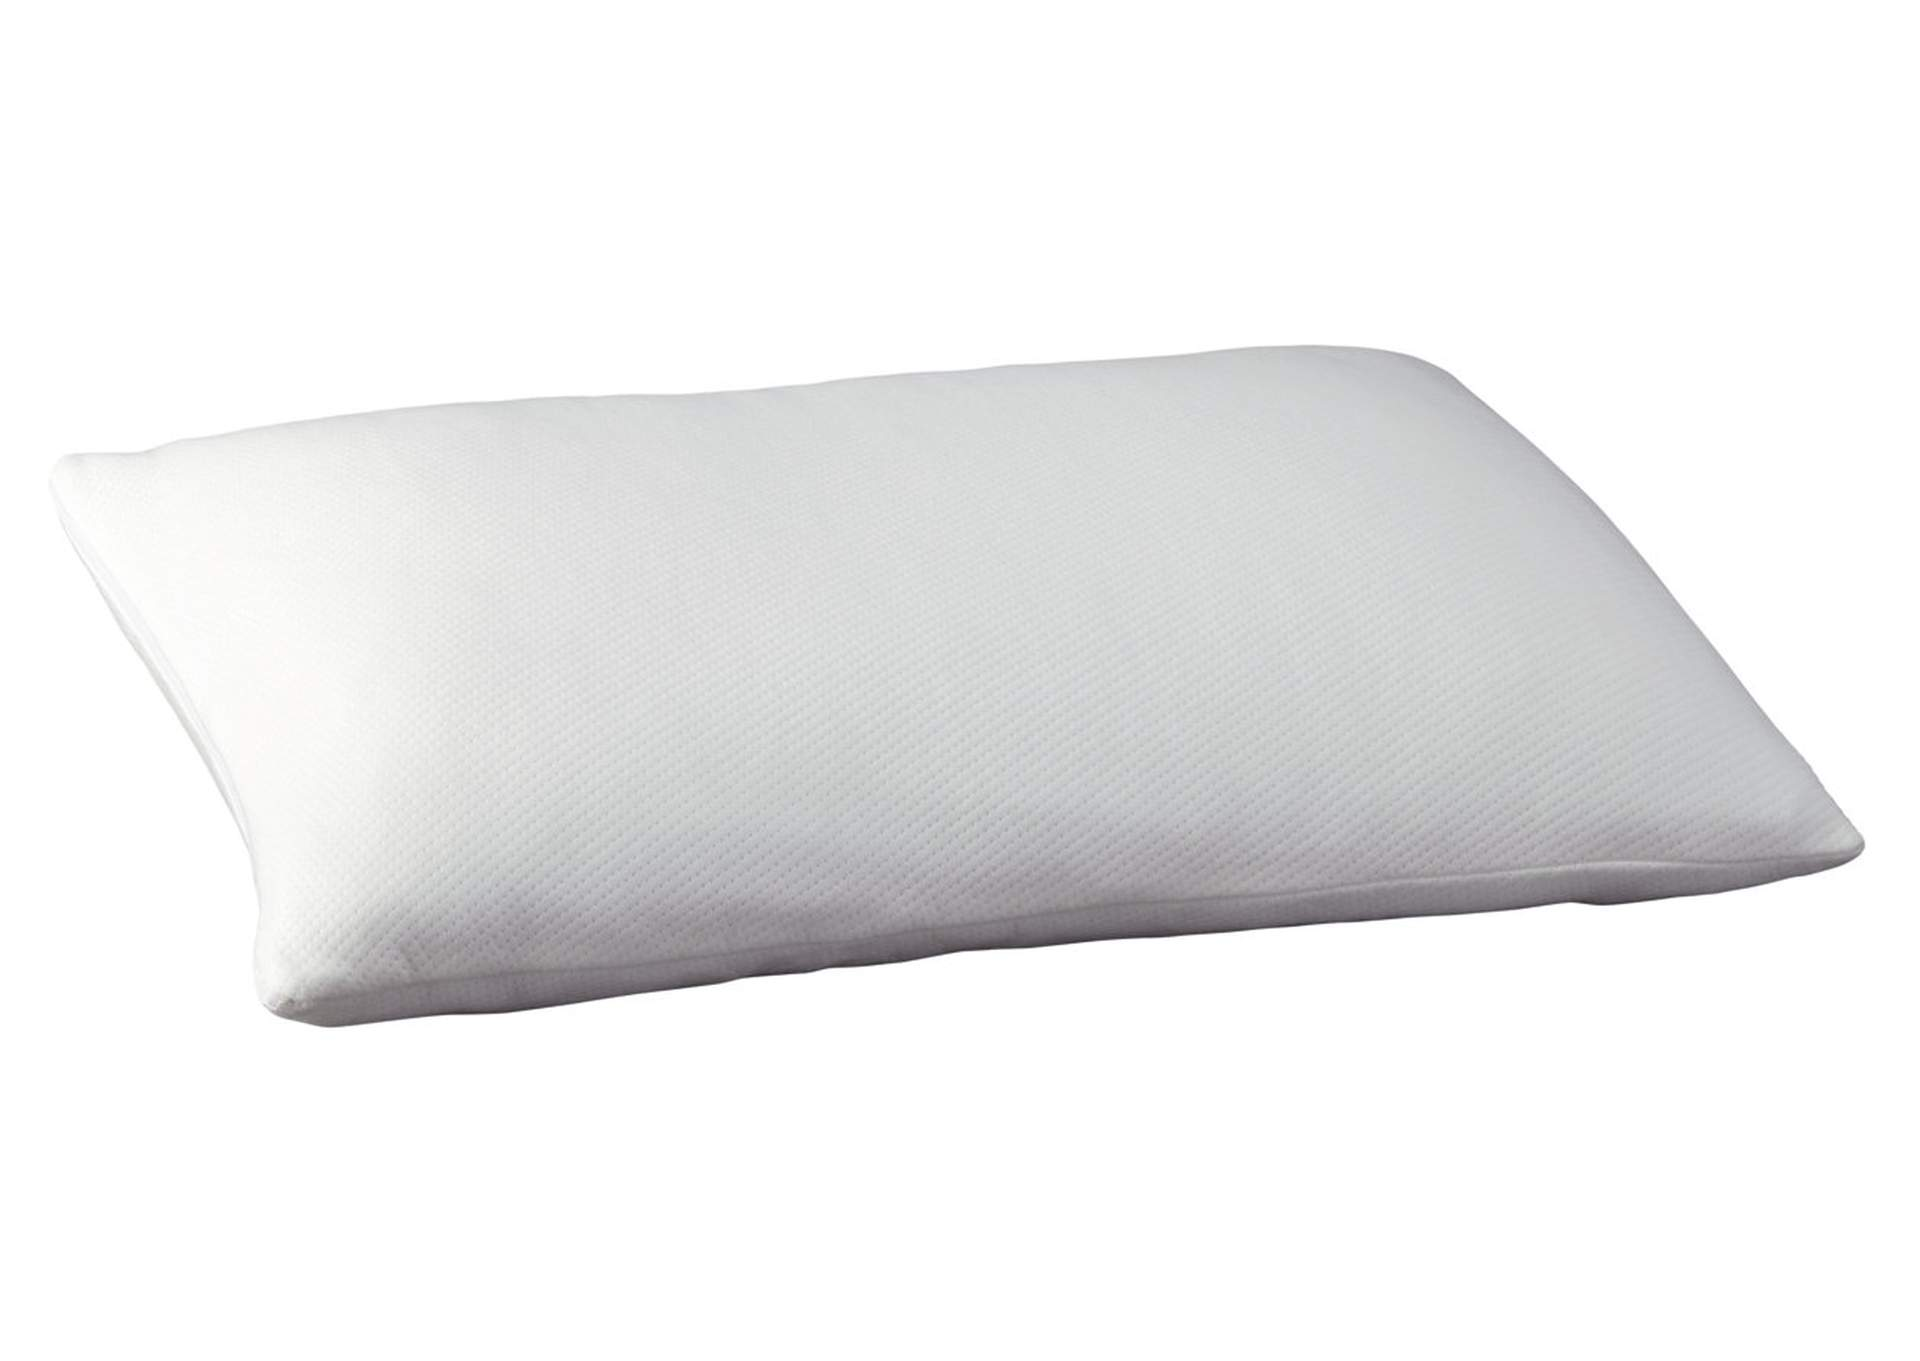 Promotional Memory Foam Pillow,Sierra Sleep by Ashley